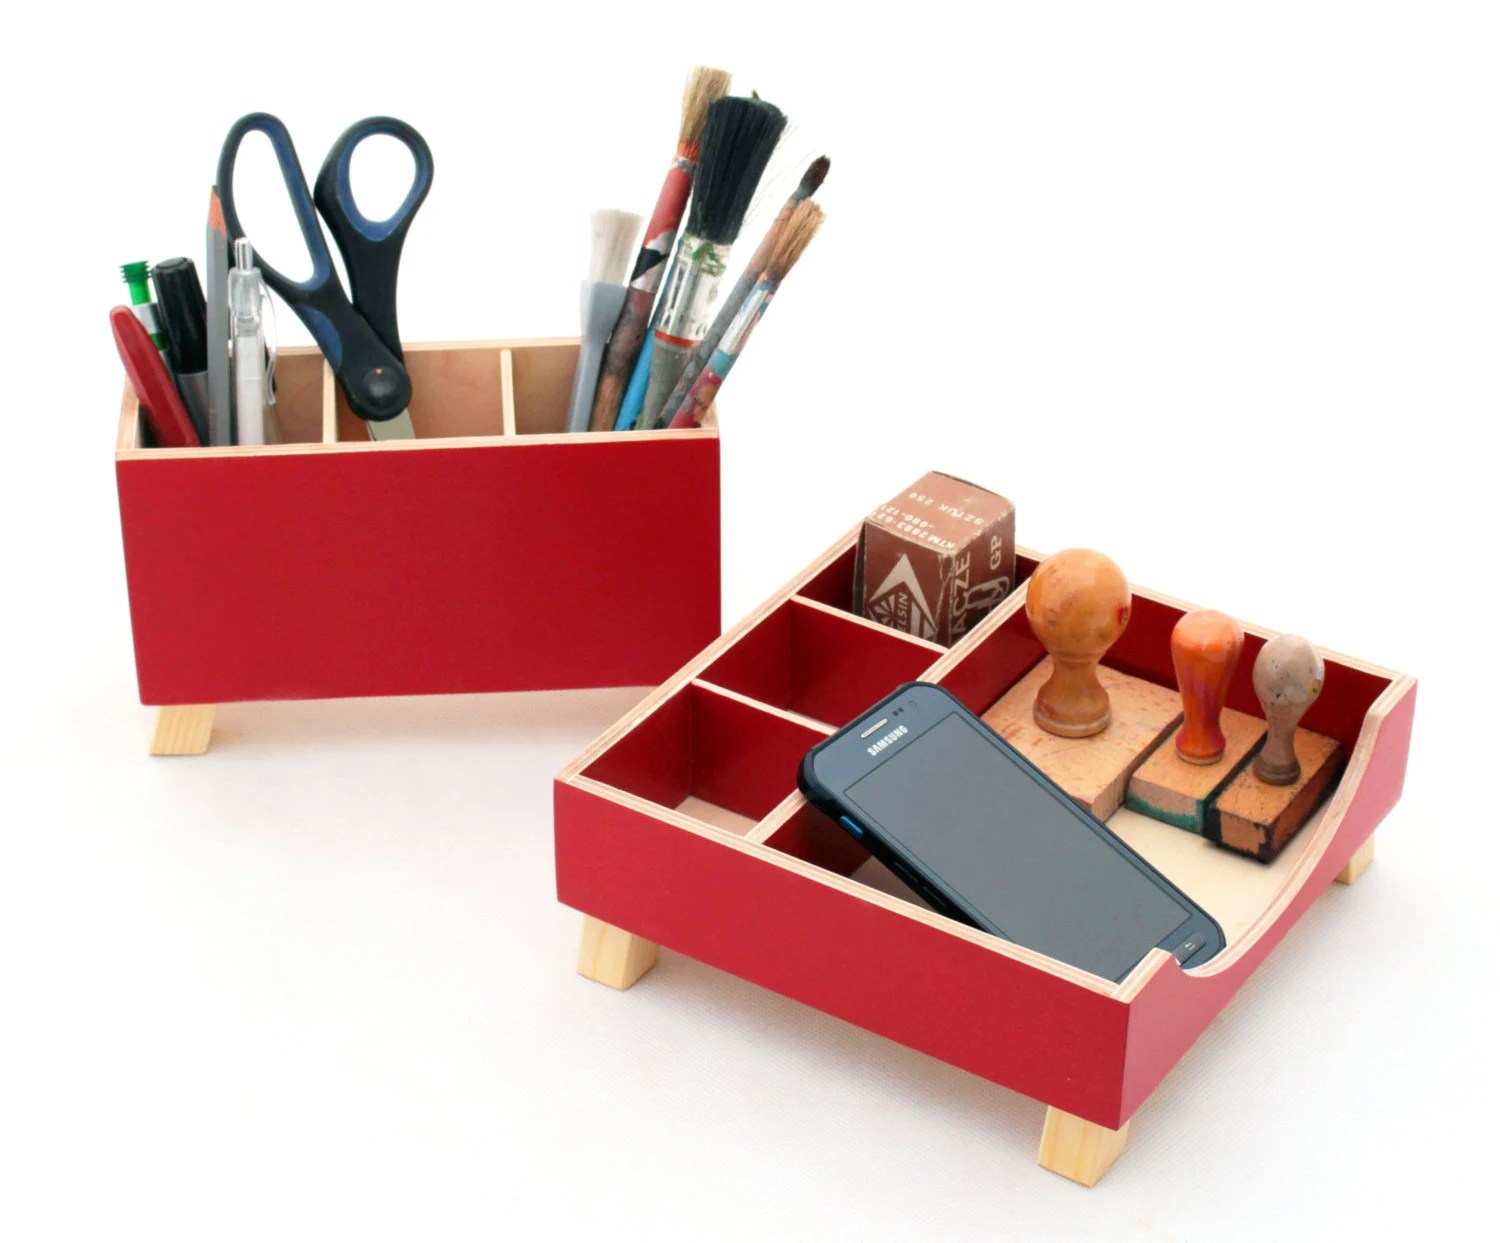 Wood Desk Organizer Set Red Desk Organizer Desk Accessories For Office Desktop